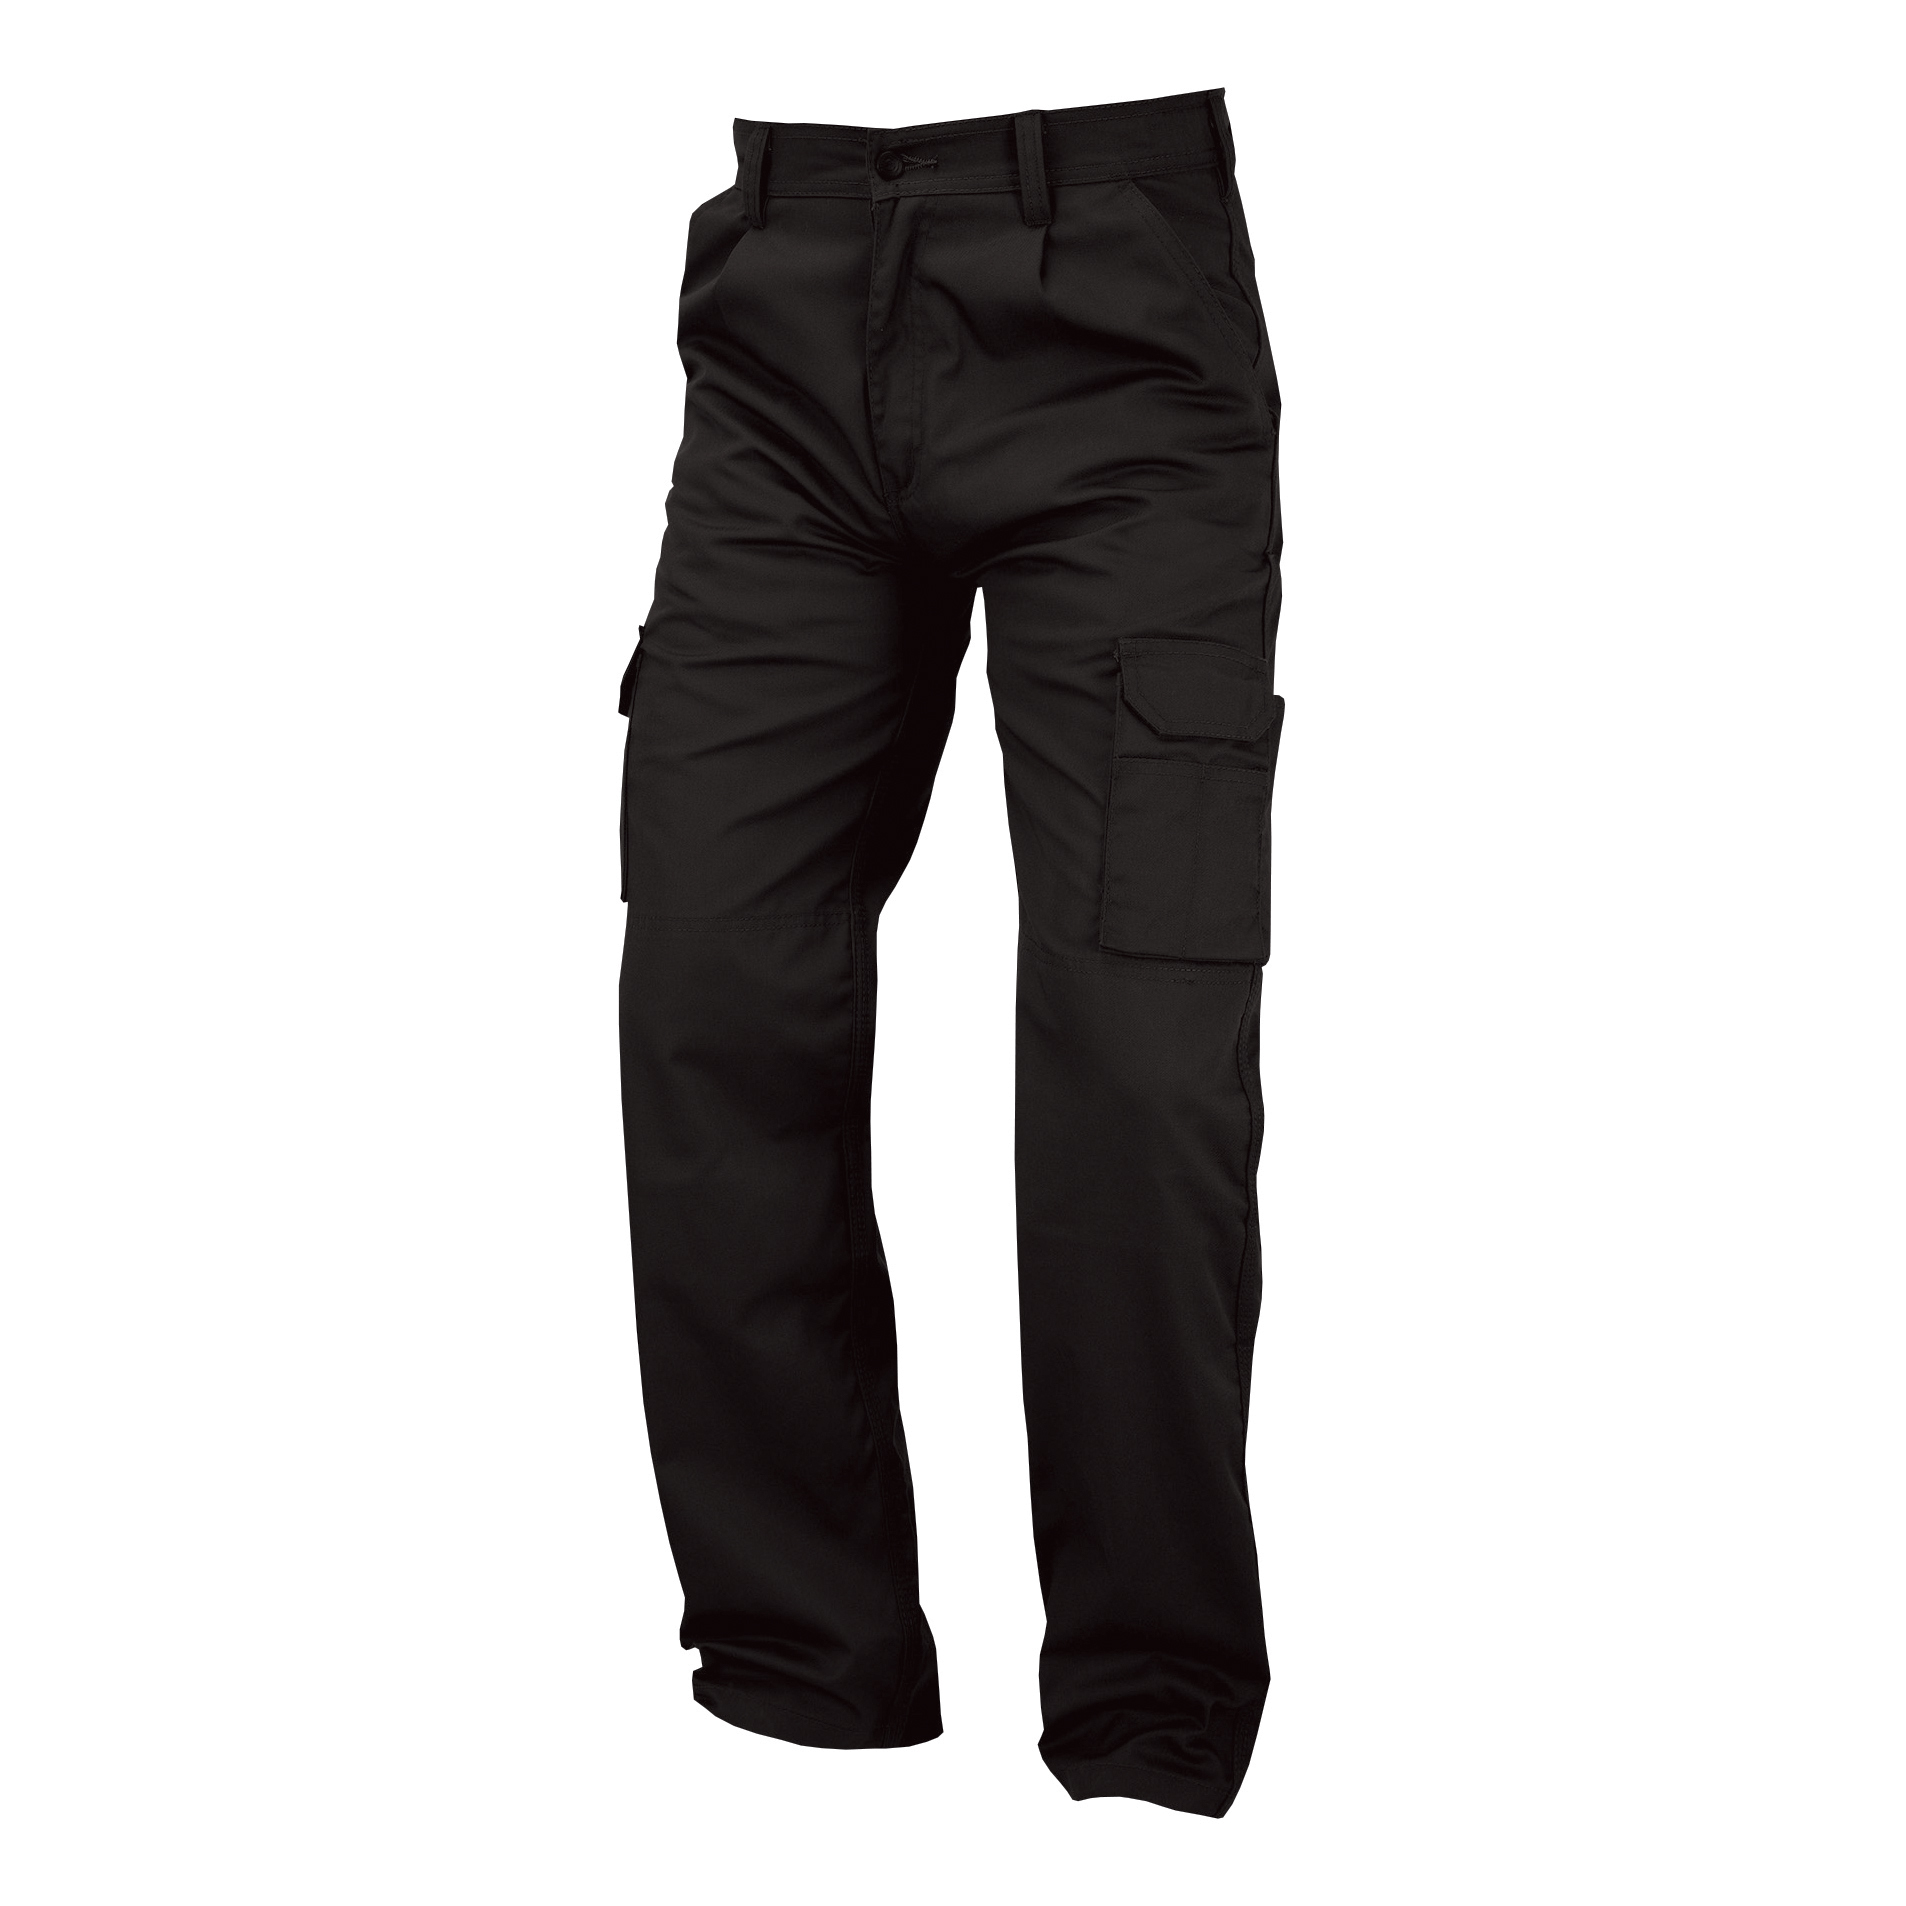 Combat Trouser Multi-functional Waist 28in Leg 29in Black Ref PCTHWBL28S *Approx 3 Day Leadtime*